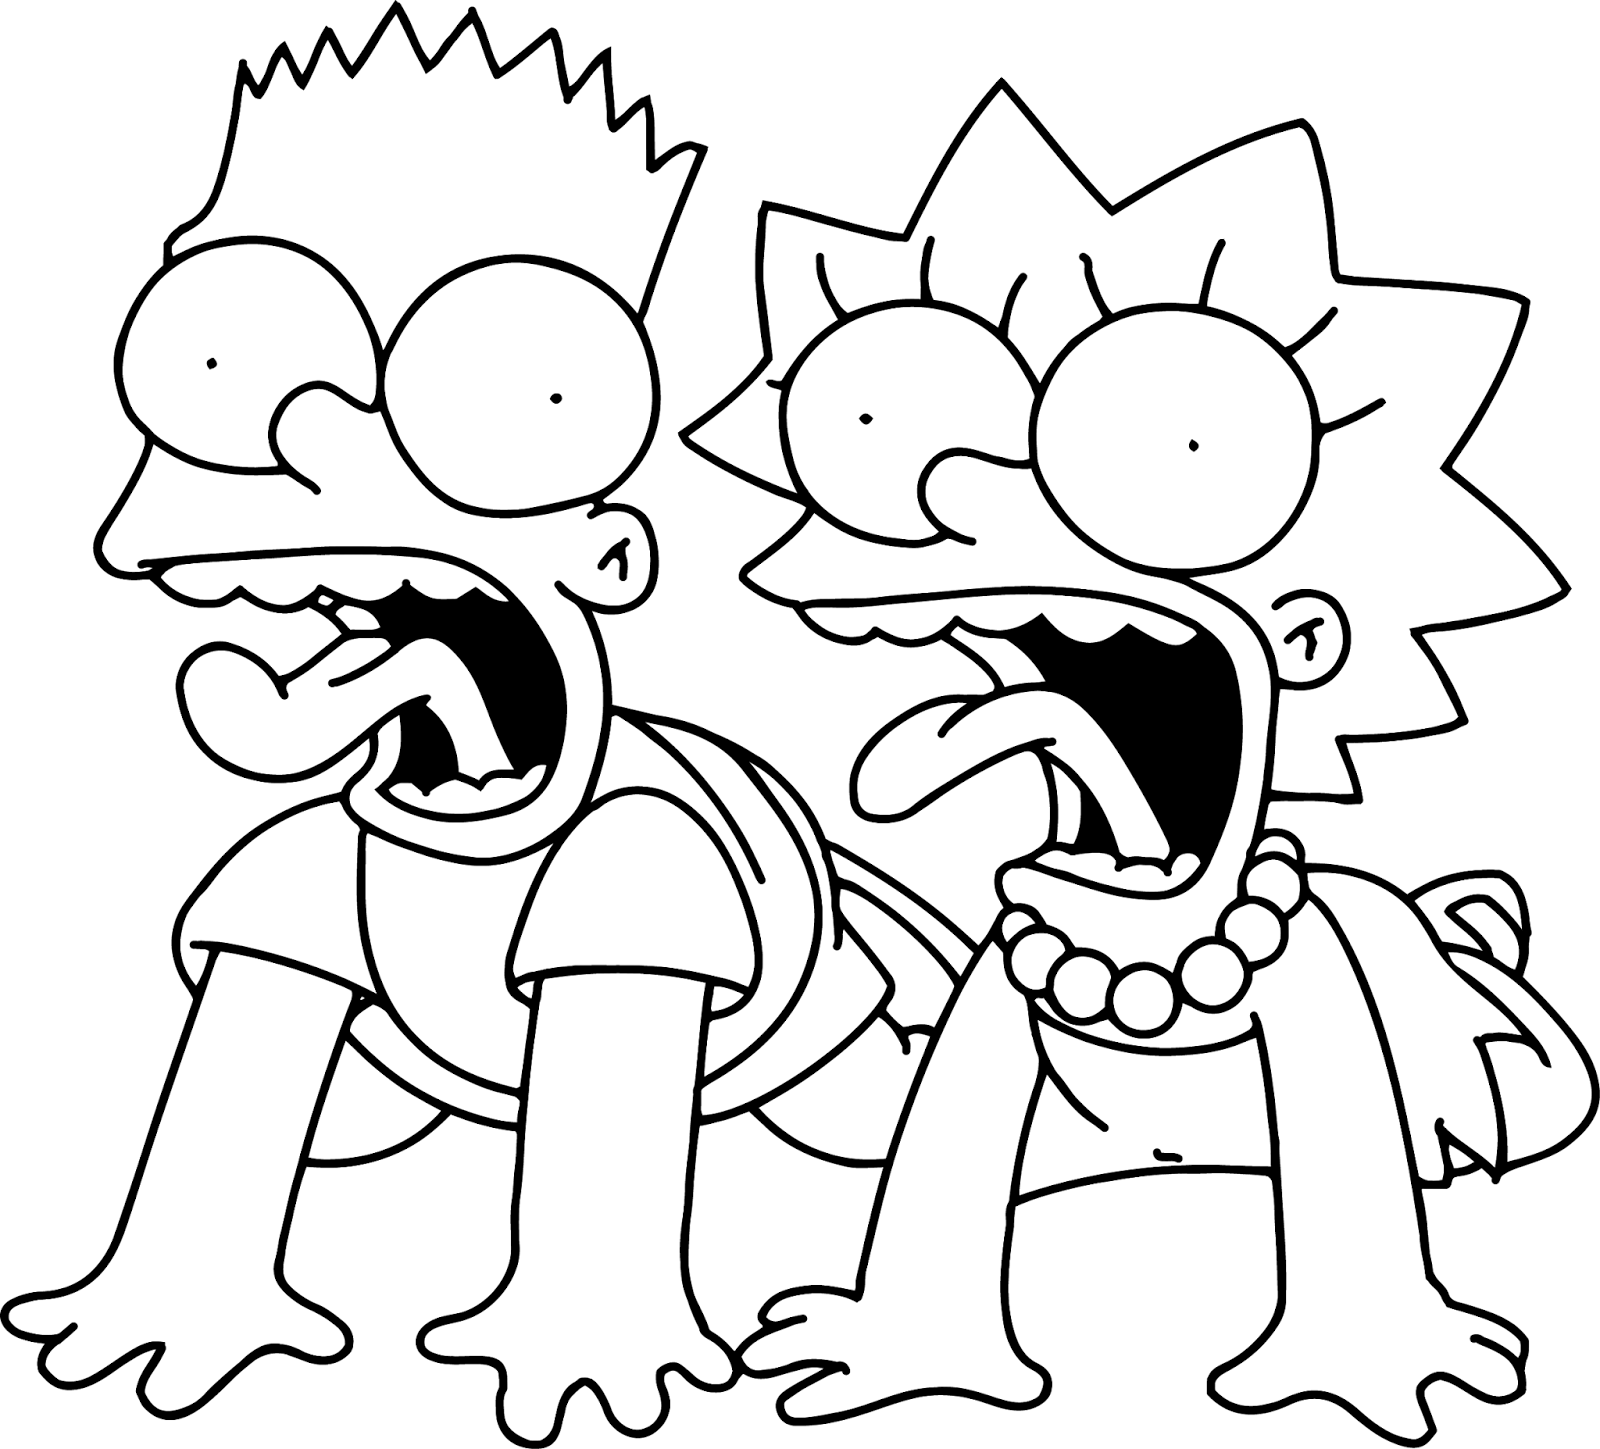 simpsons coloring pages páginas para colorear originales original coloring pages coloring pages simpsons